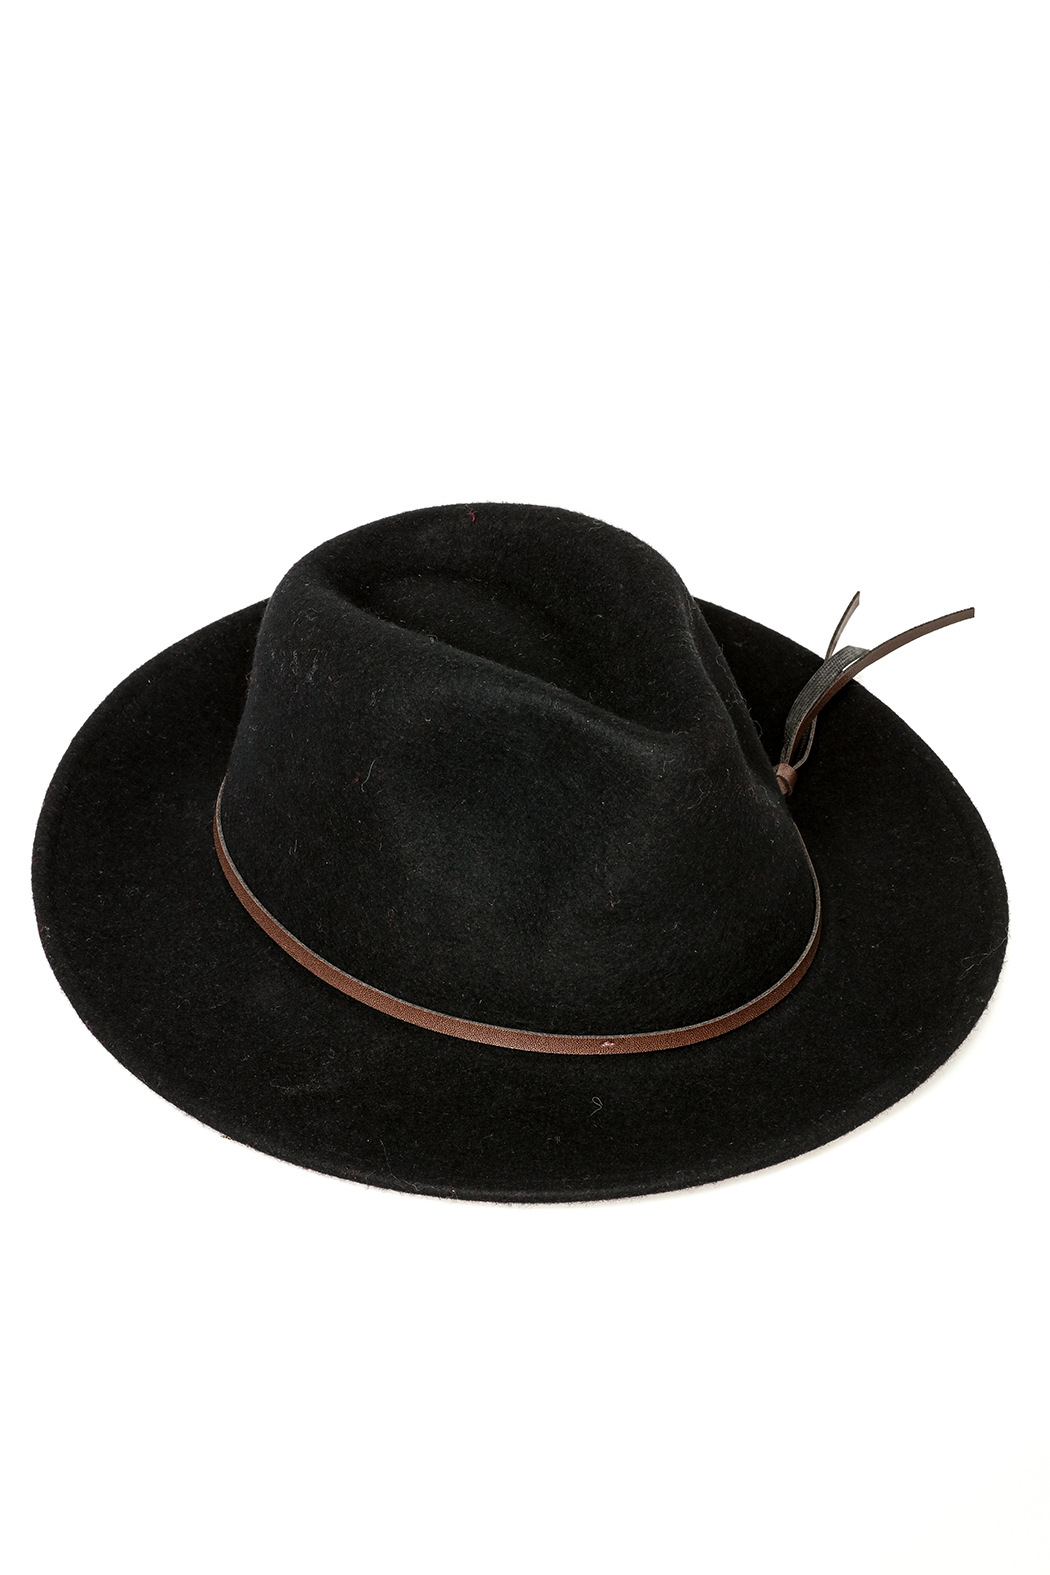 david and young Black Fedora Hat - Main Image